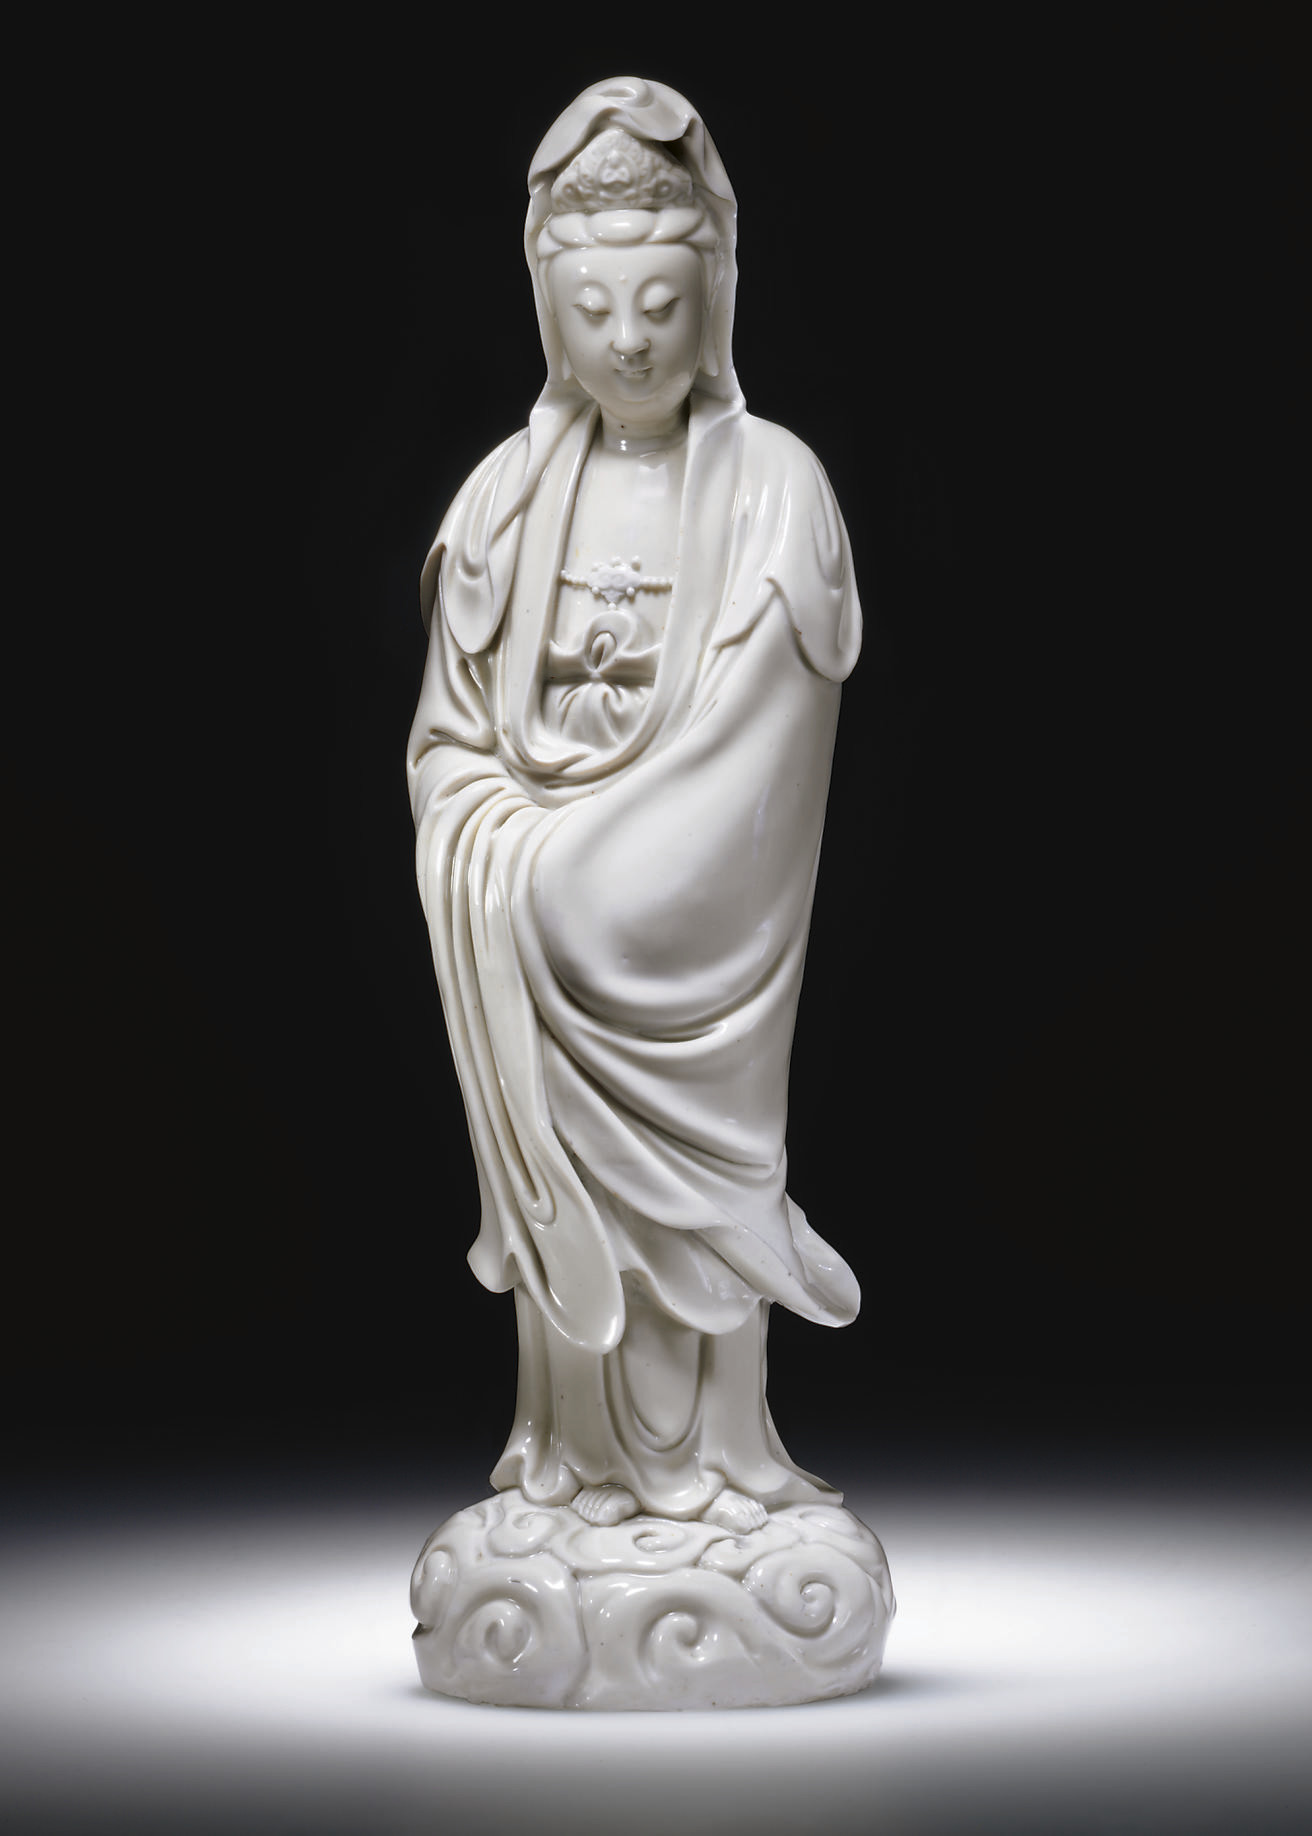 A LARGE BLANC-DE-CHINE FIGURE